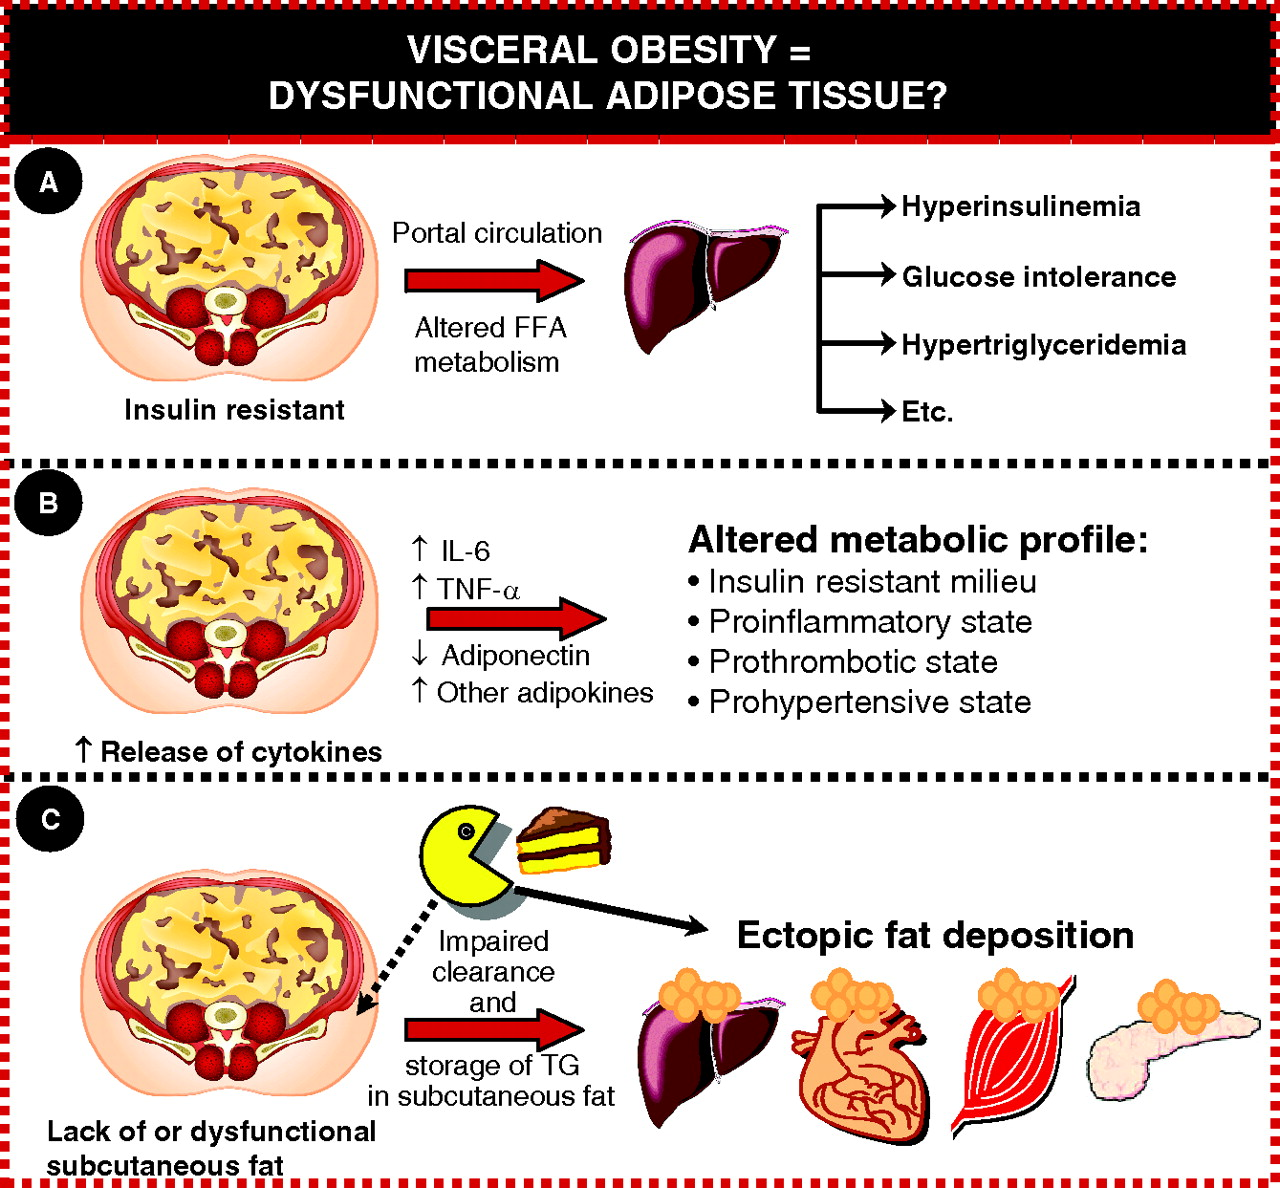 Abdominal Obesity And The Metabolic Syndrome Contribution To Global Cardiometabolic Risk Arteriosclerosis Thrombosis And Vascular Biology